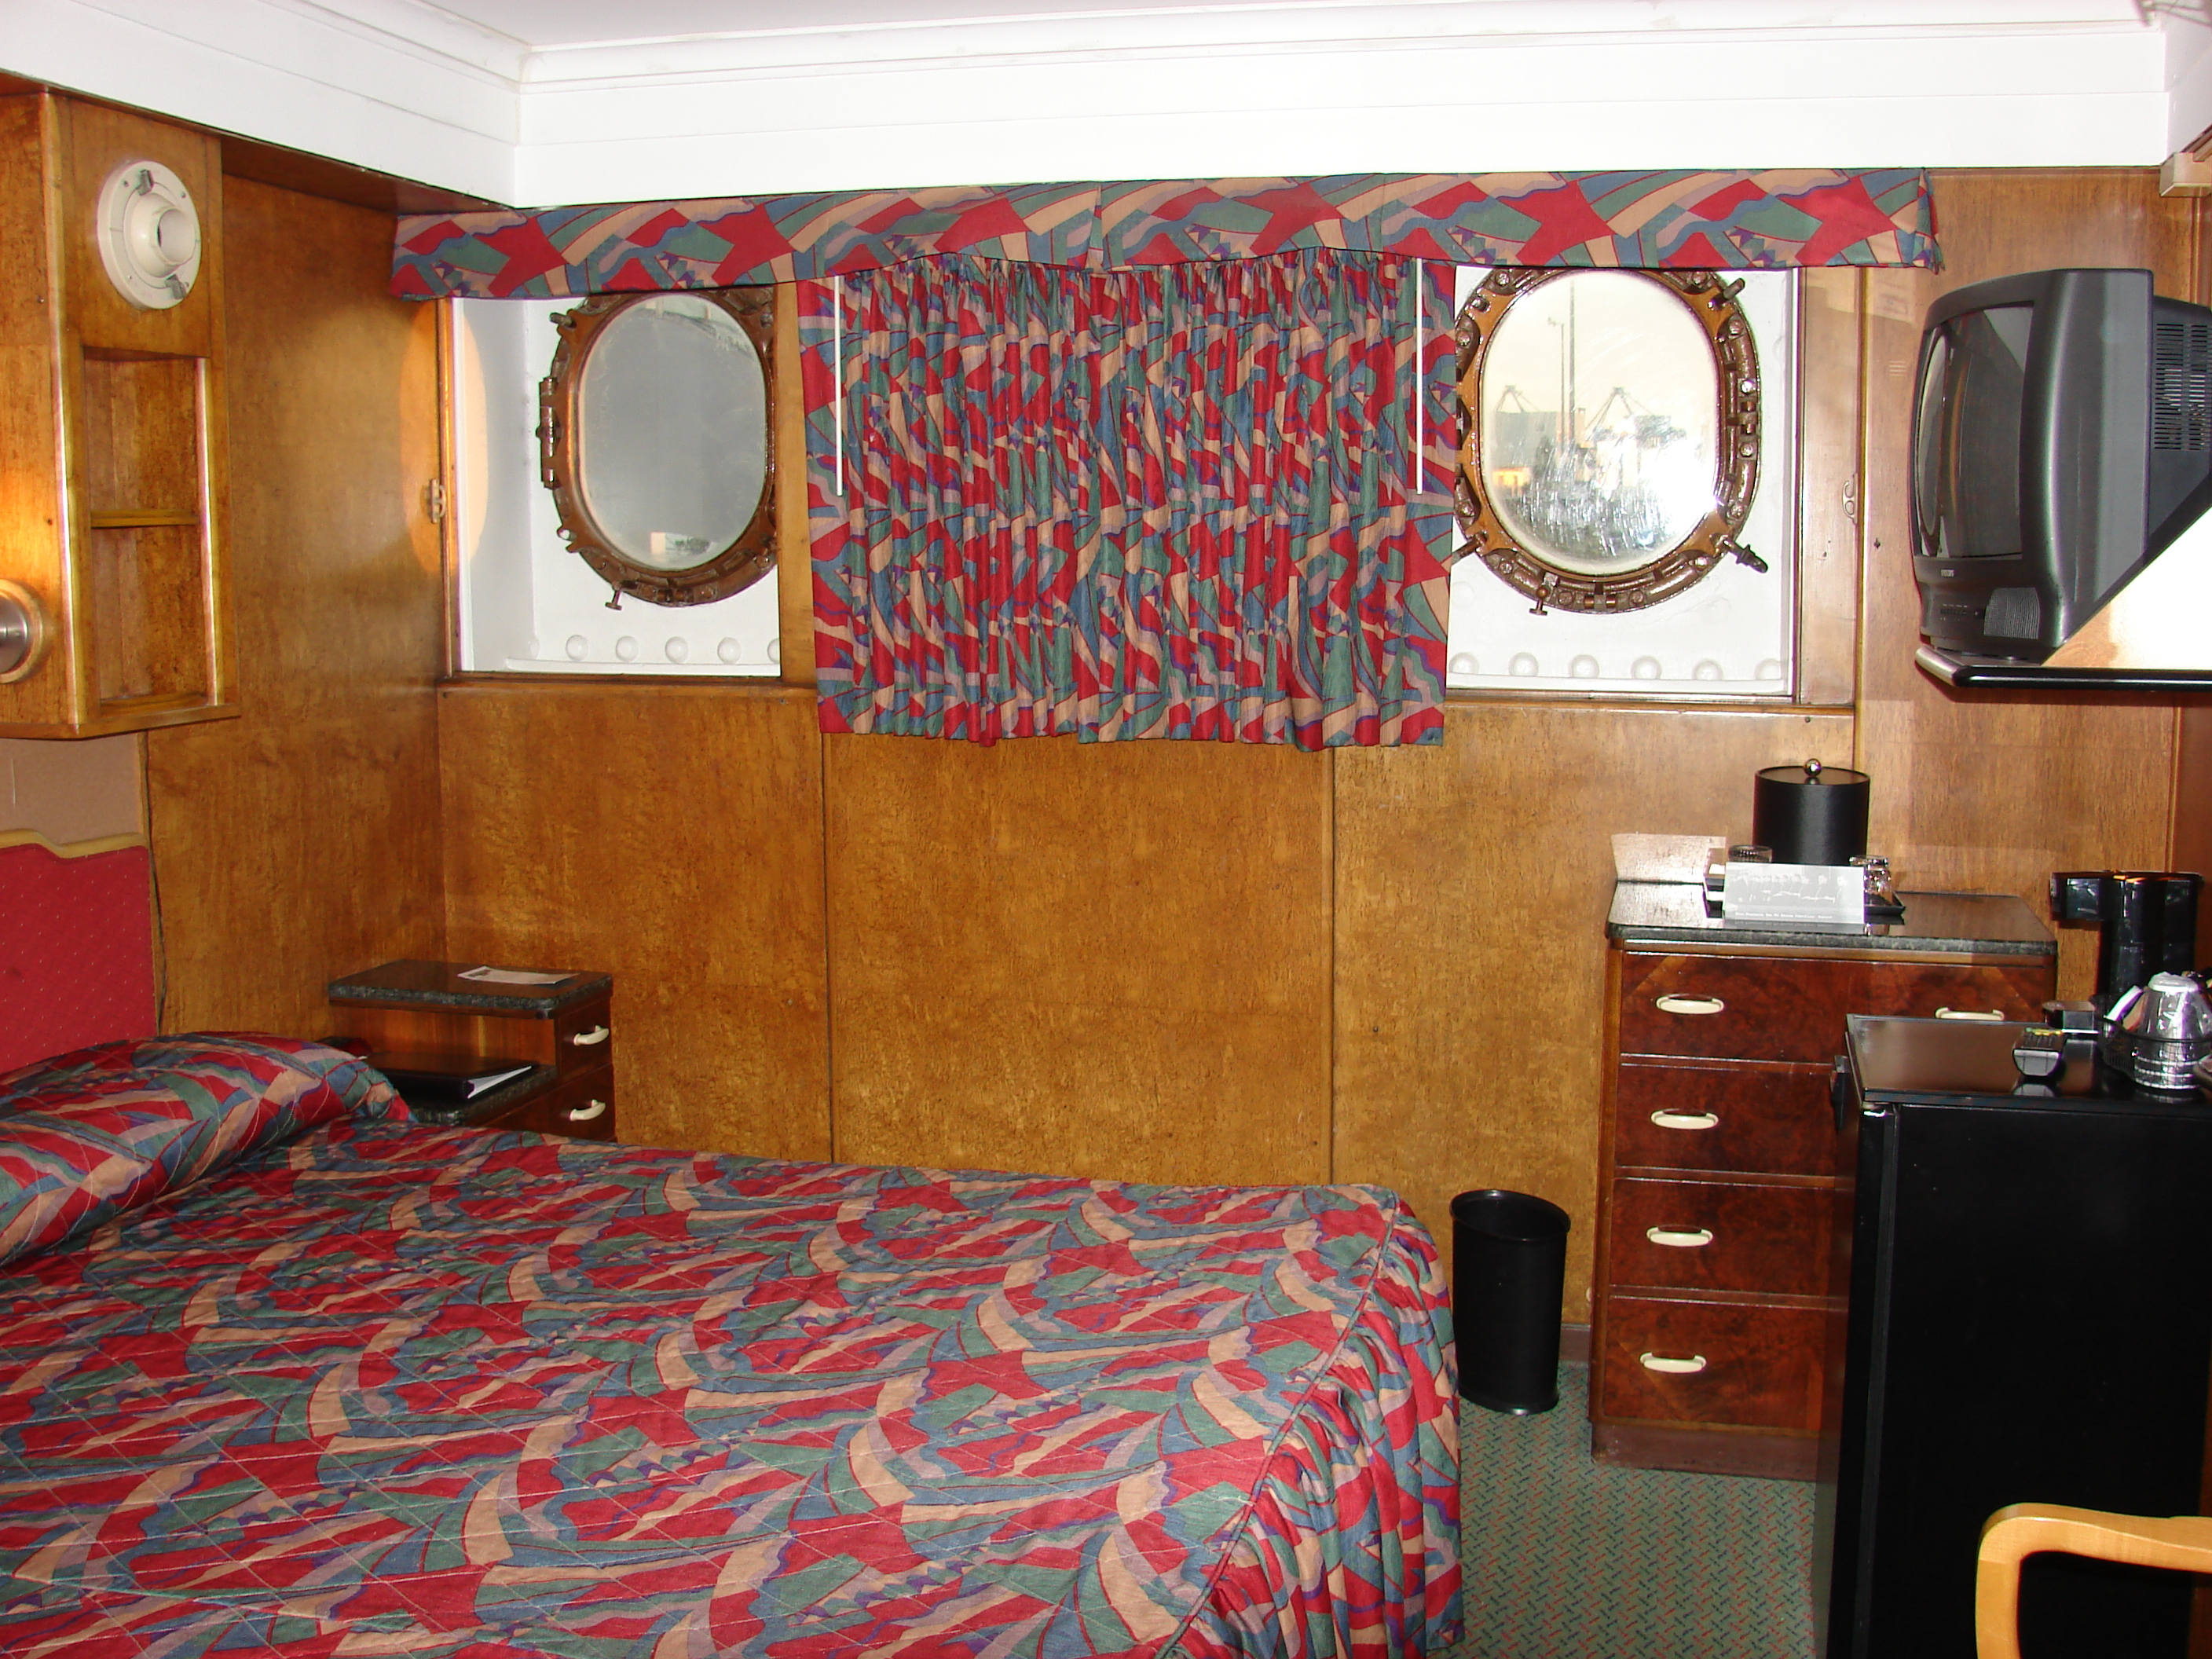 Queen Mary Cruise To Travel